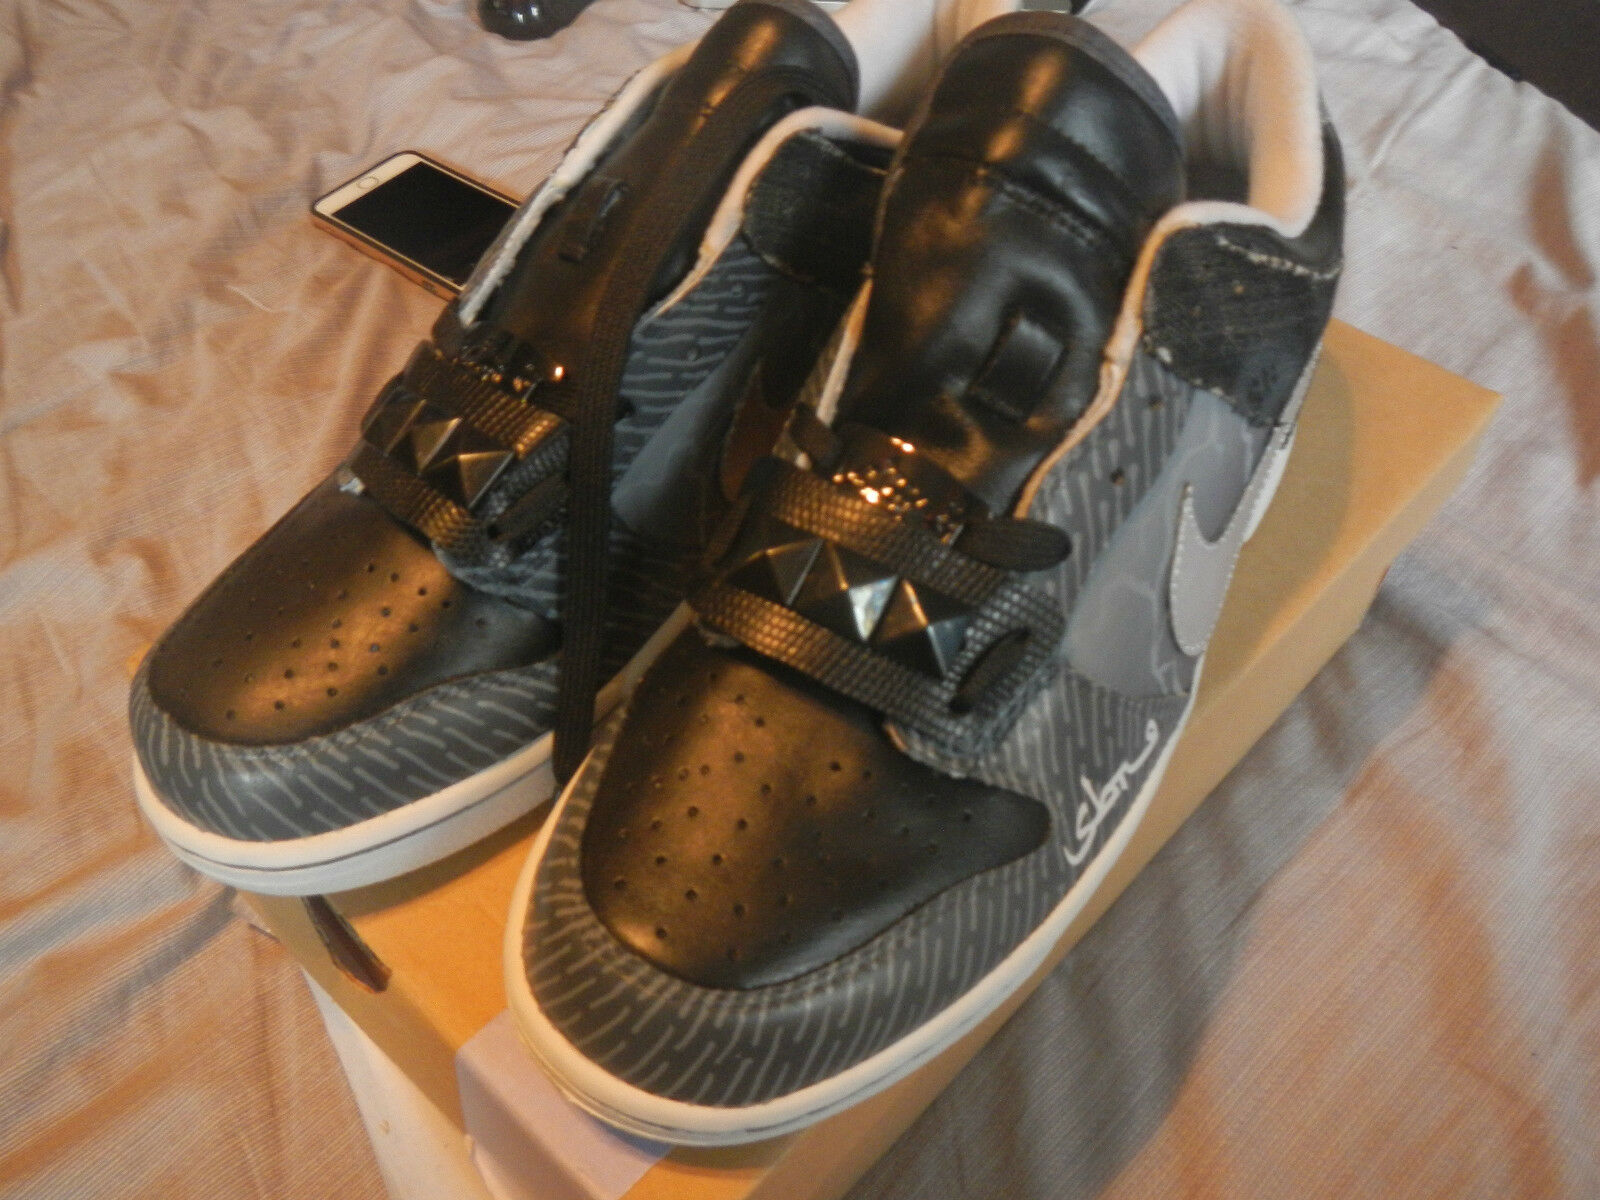 2007 SUPER RARE NIKE DUNK faible BY SABOTAGE & MR. SK HAND PAINT ONLY 12 PAIRS